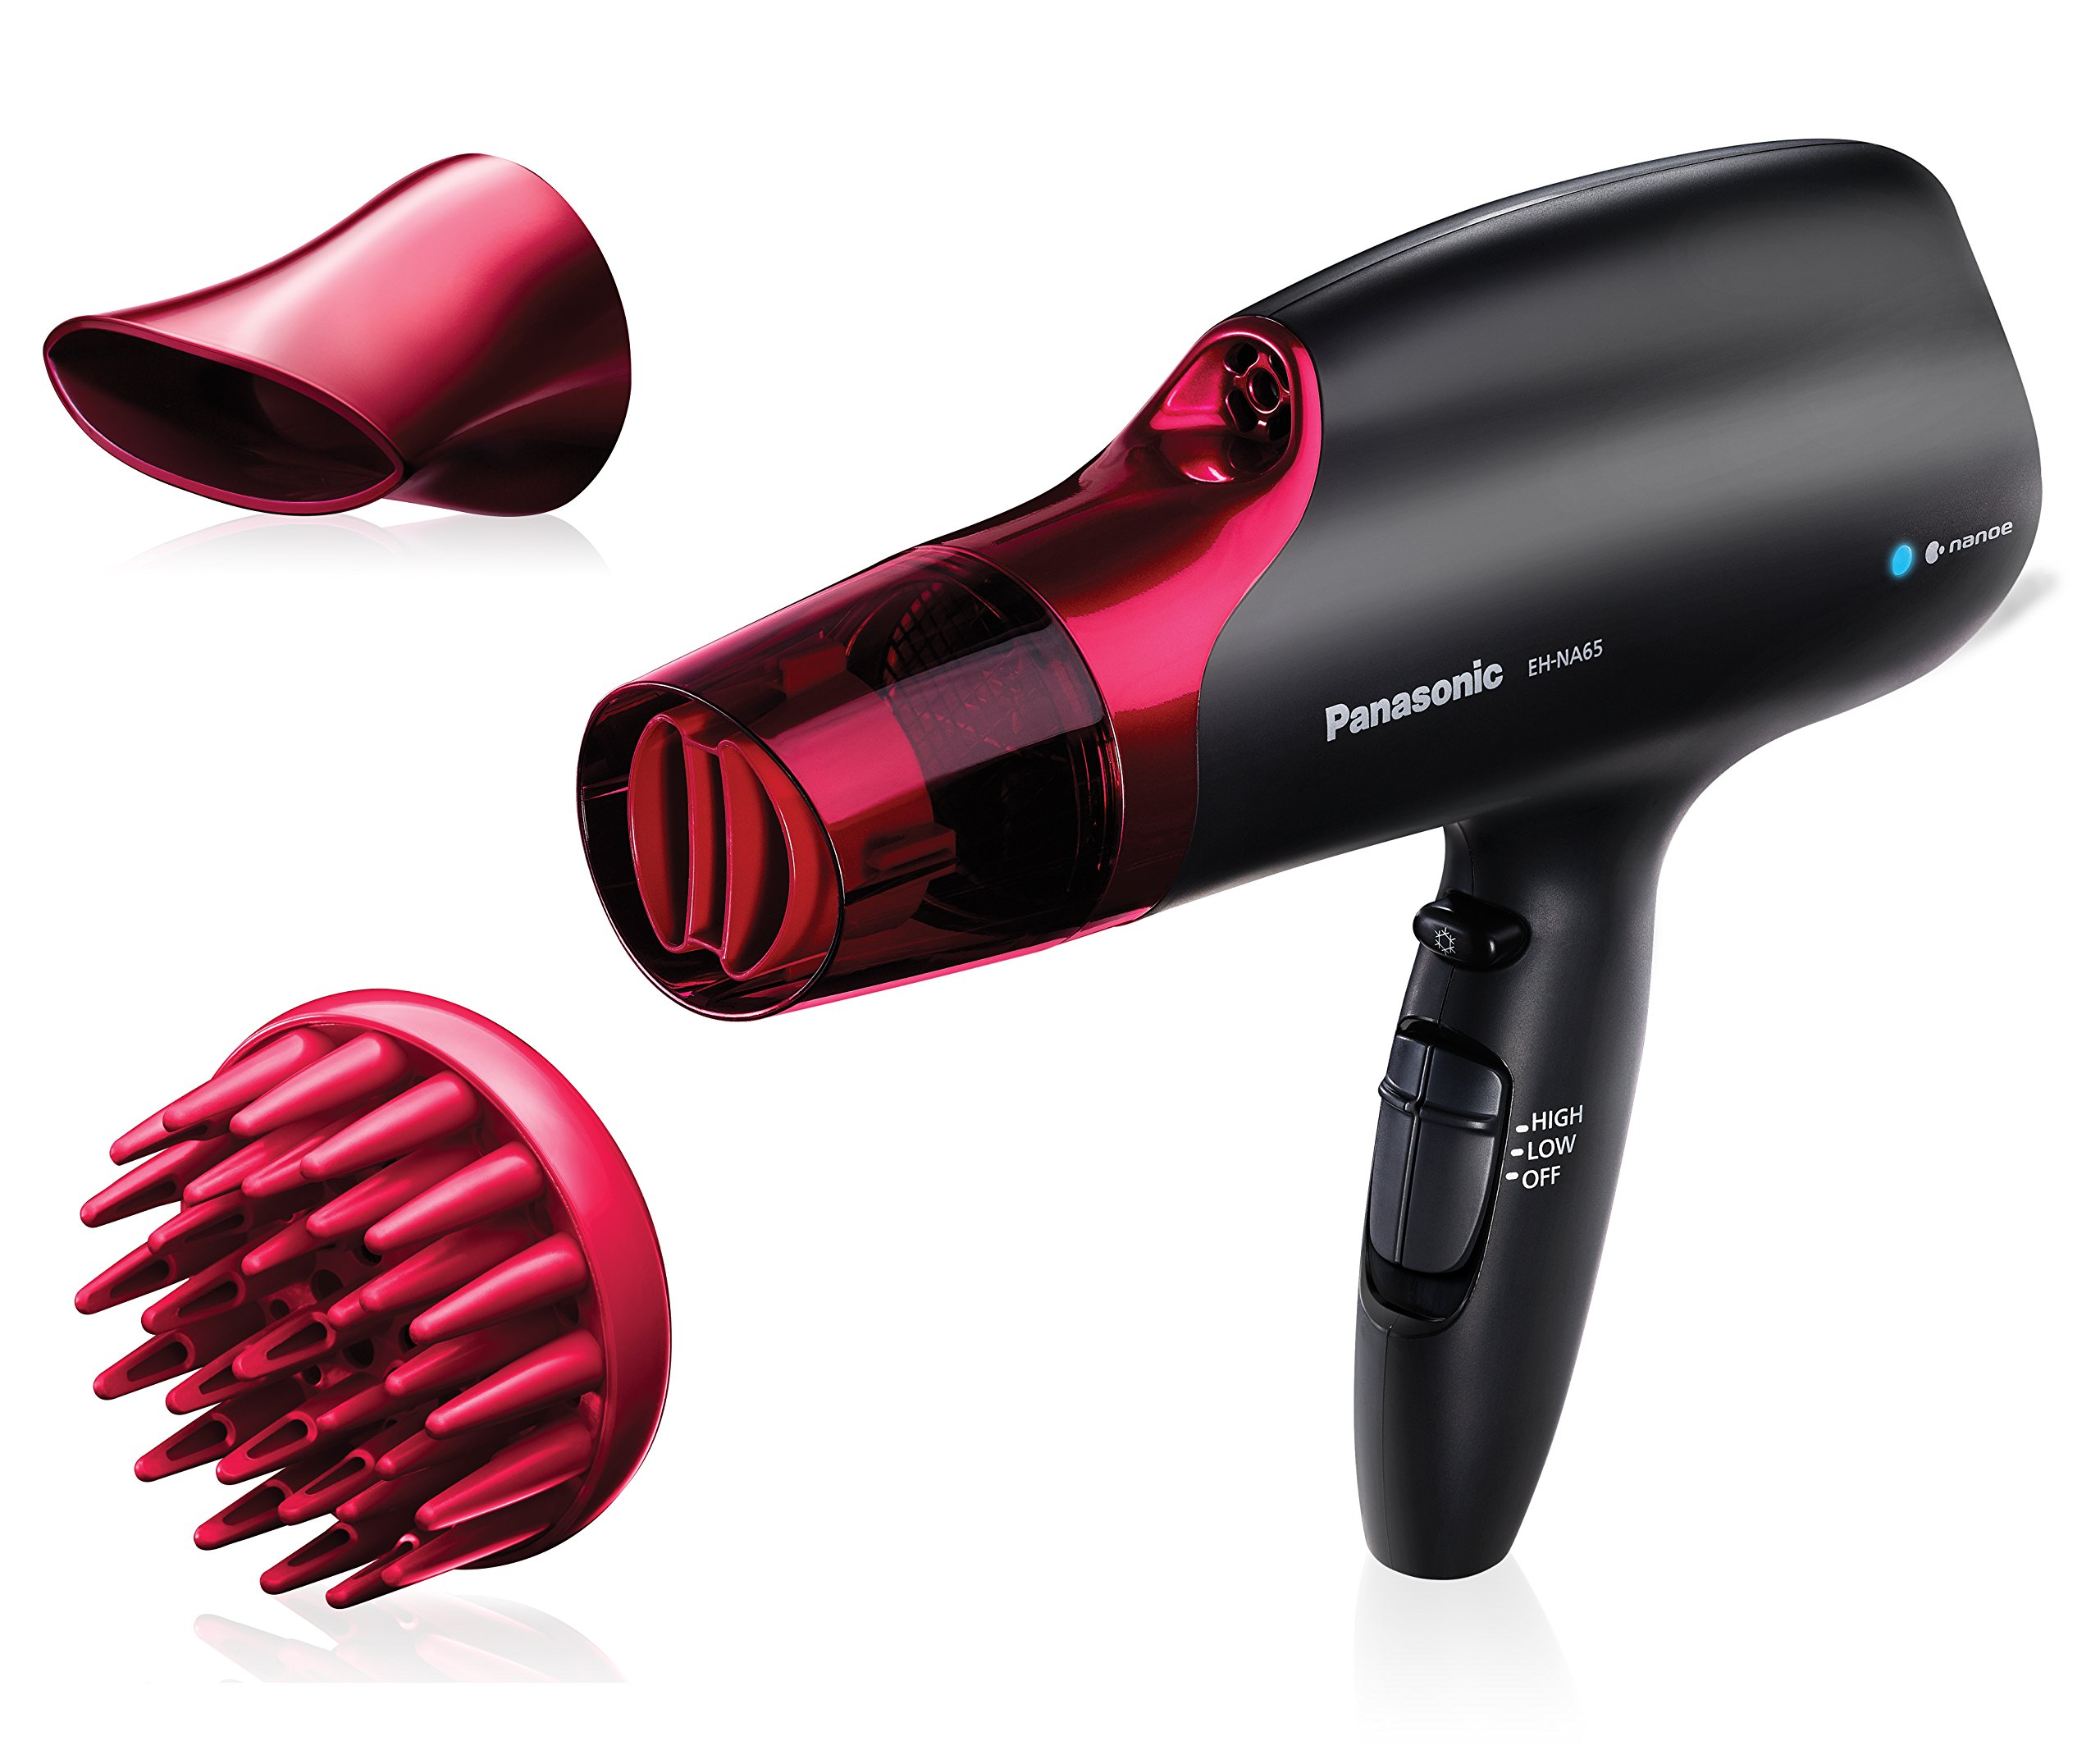 Panasonic EH-NA65-K nanoe Hair Dryer, Professional-Quality with 3 attachments including Quick-Dry Blow Dry Nozzle for Smooth, Shiny Hair